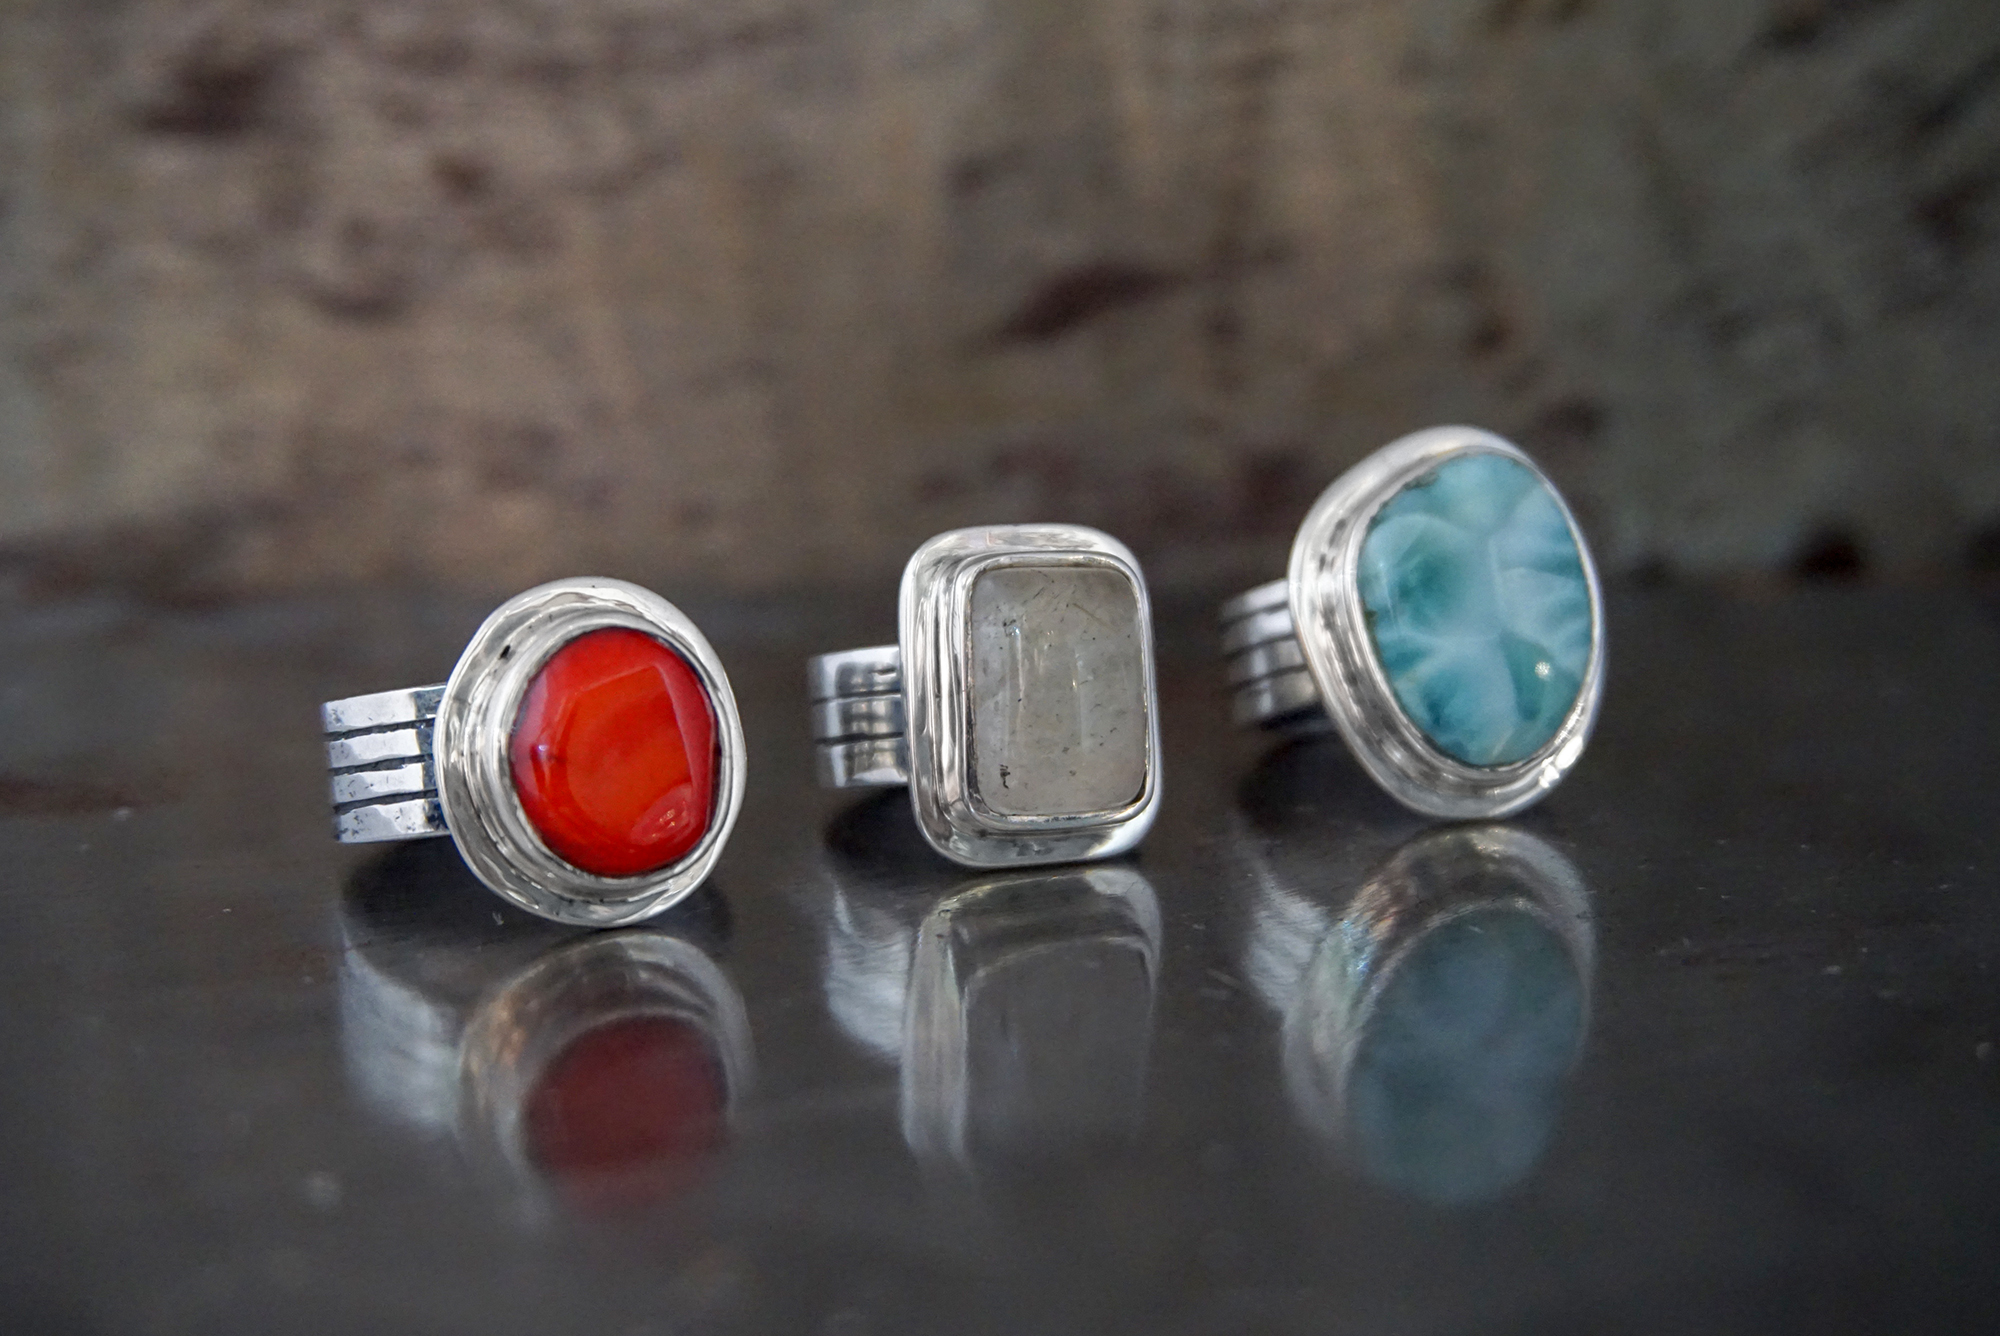 red coral, rutilated quartz & larimar rings